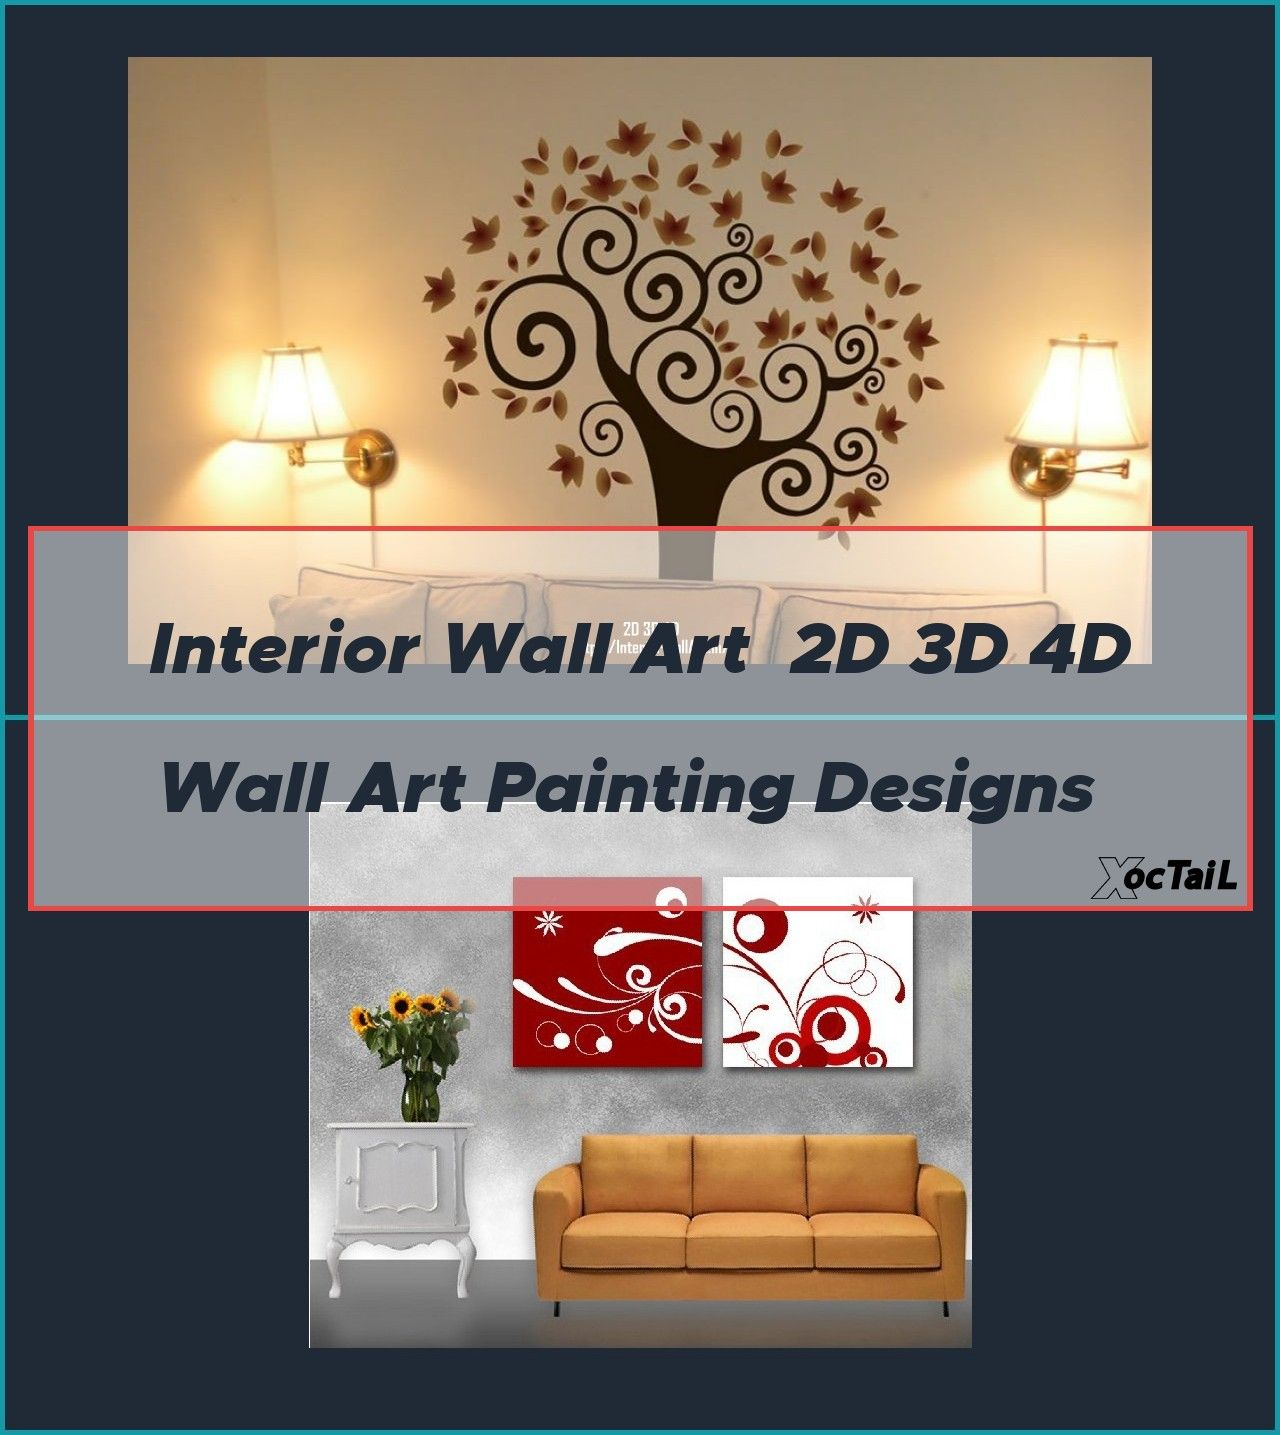 Interior Wall Art 2d 3d 4d Wall Art Painting Designs Wall